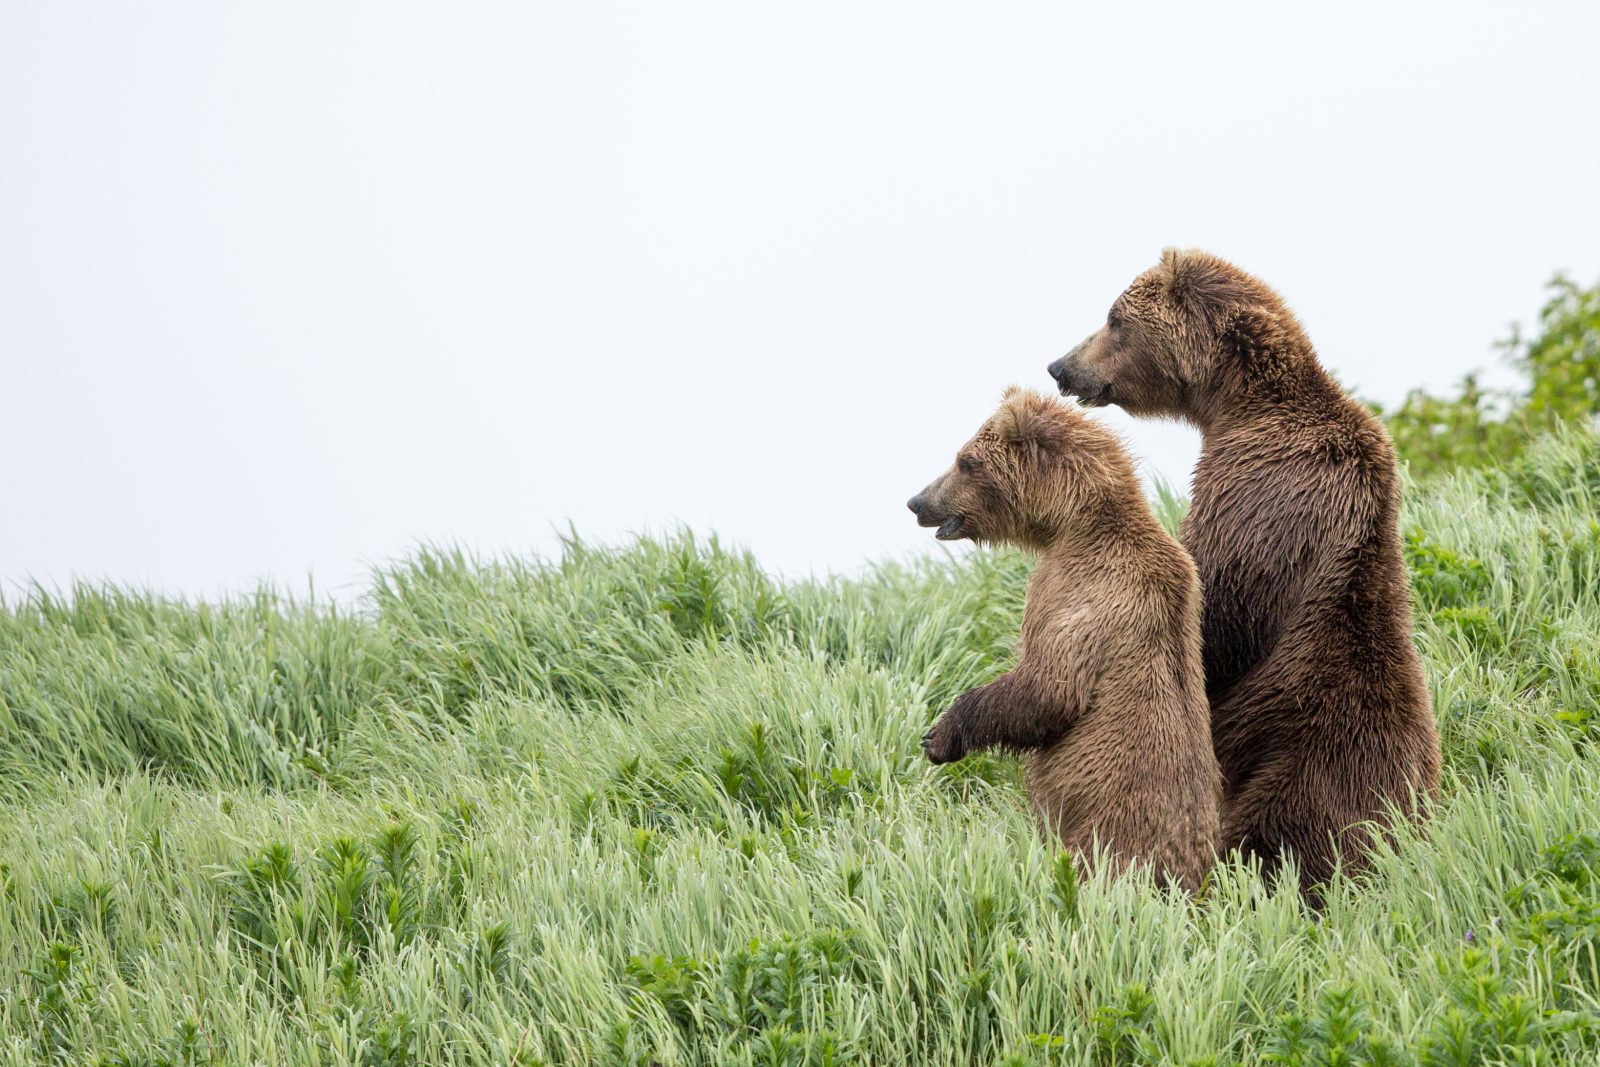 The Lookout Bears